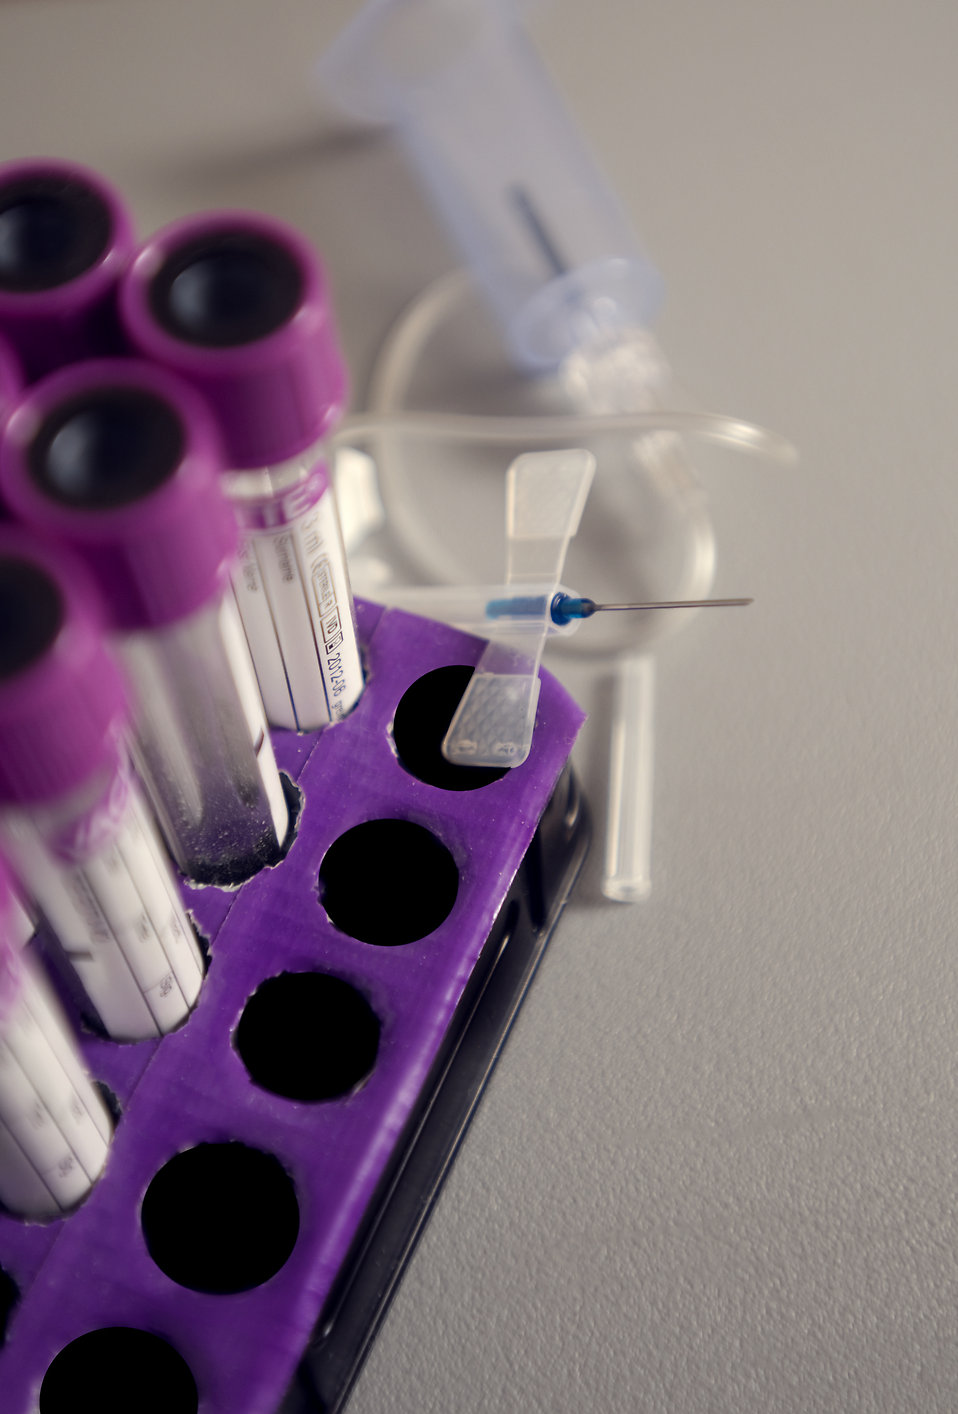 A tray holding blood-filled test tubes : Free Stock Photo